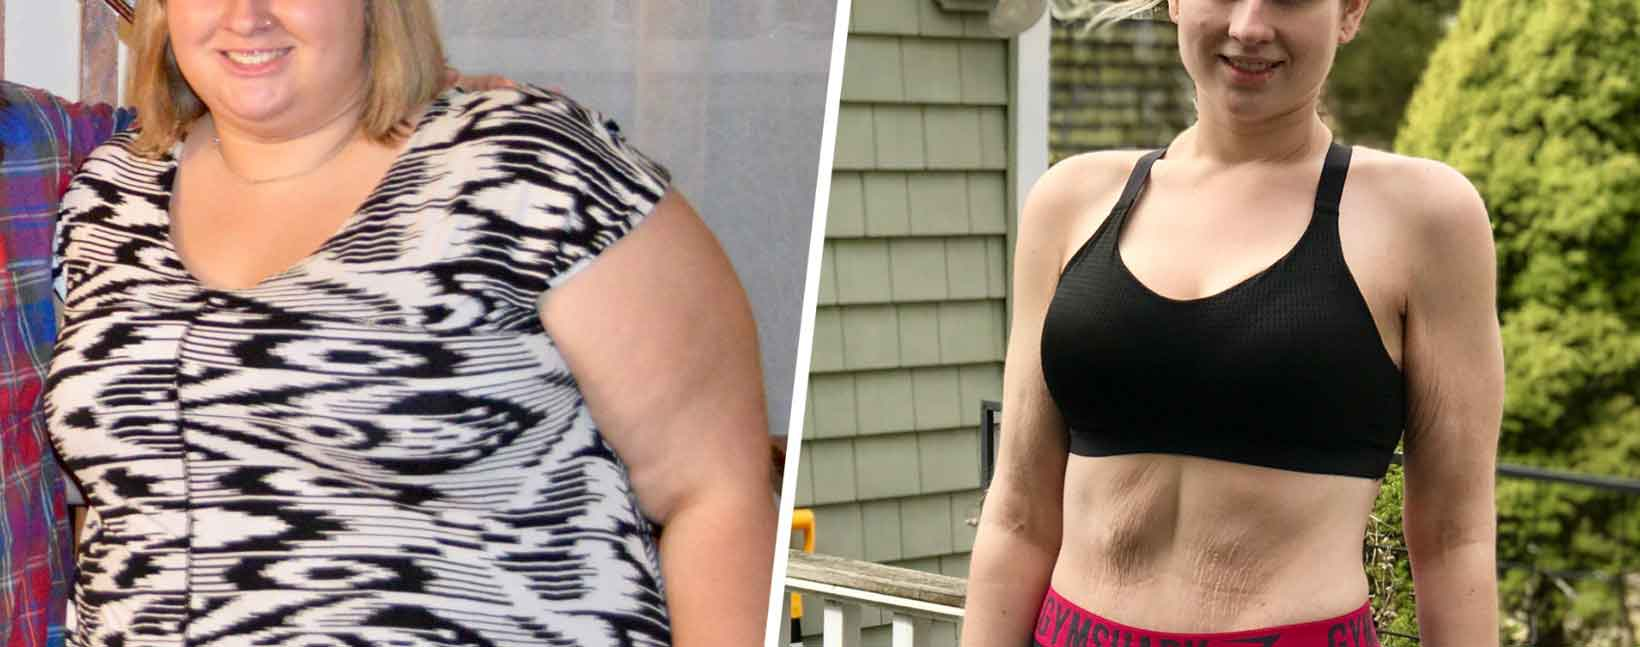 Diet before and after lap band surgery 15